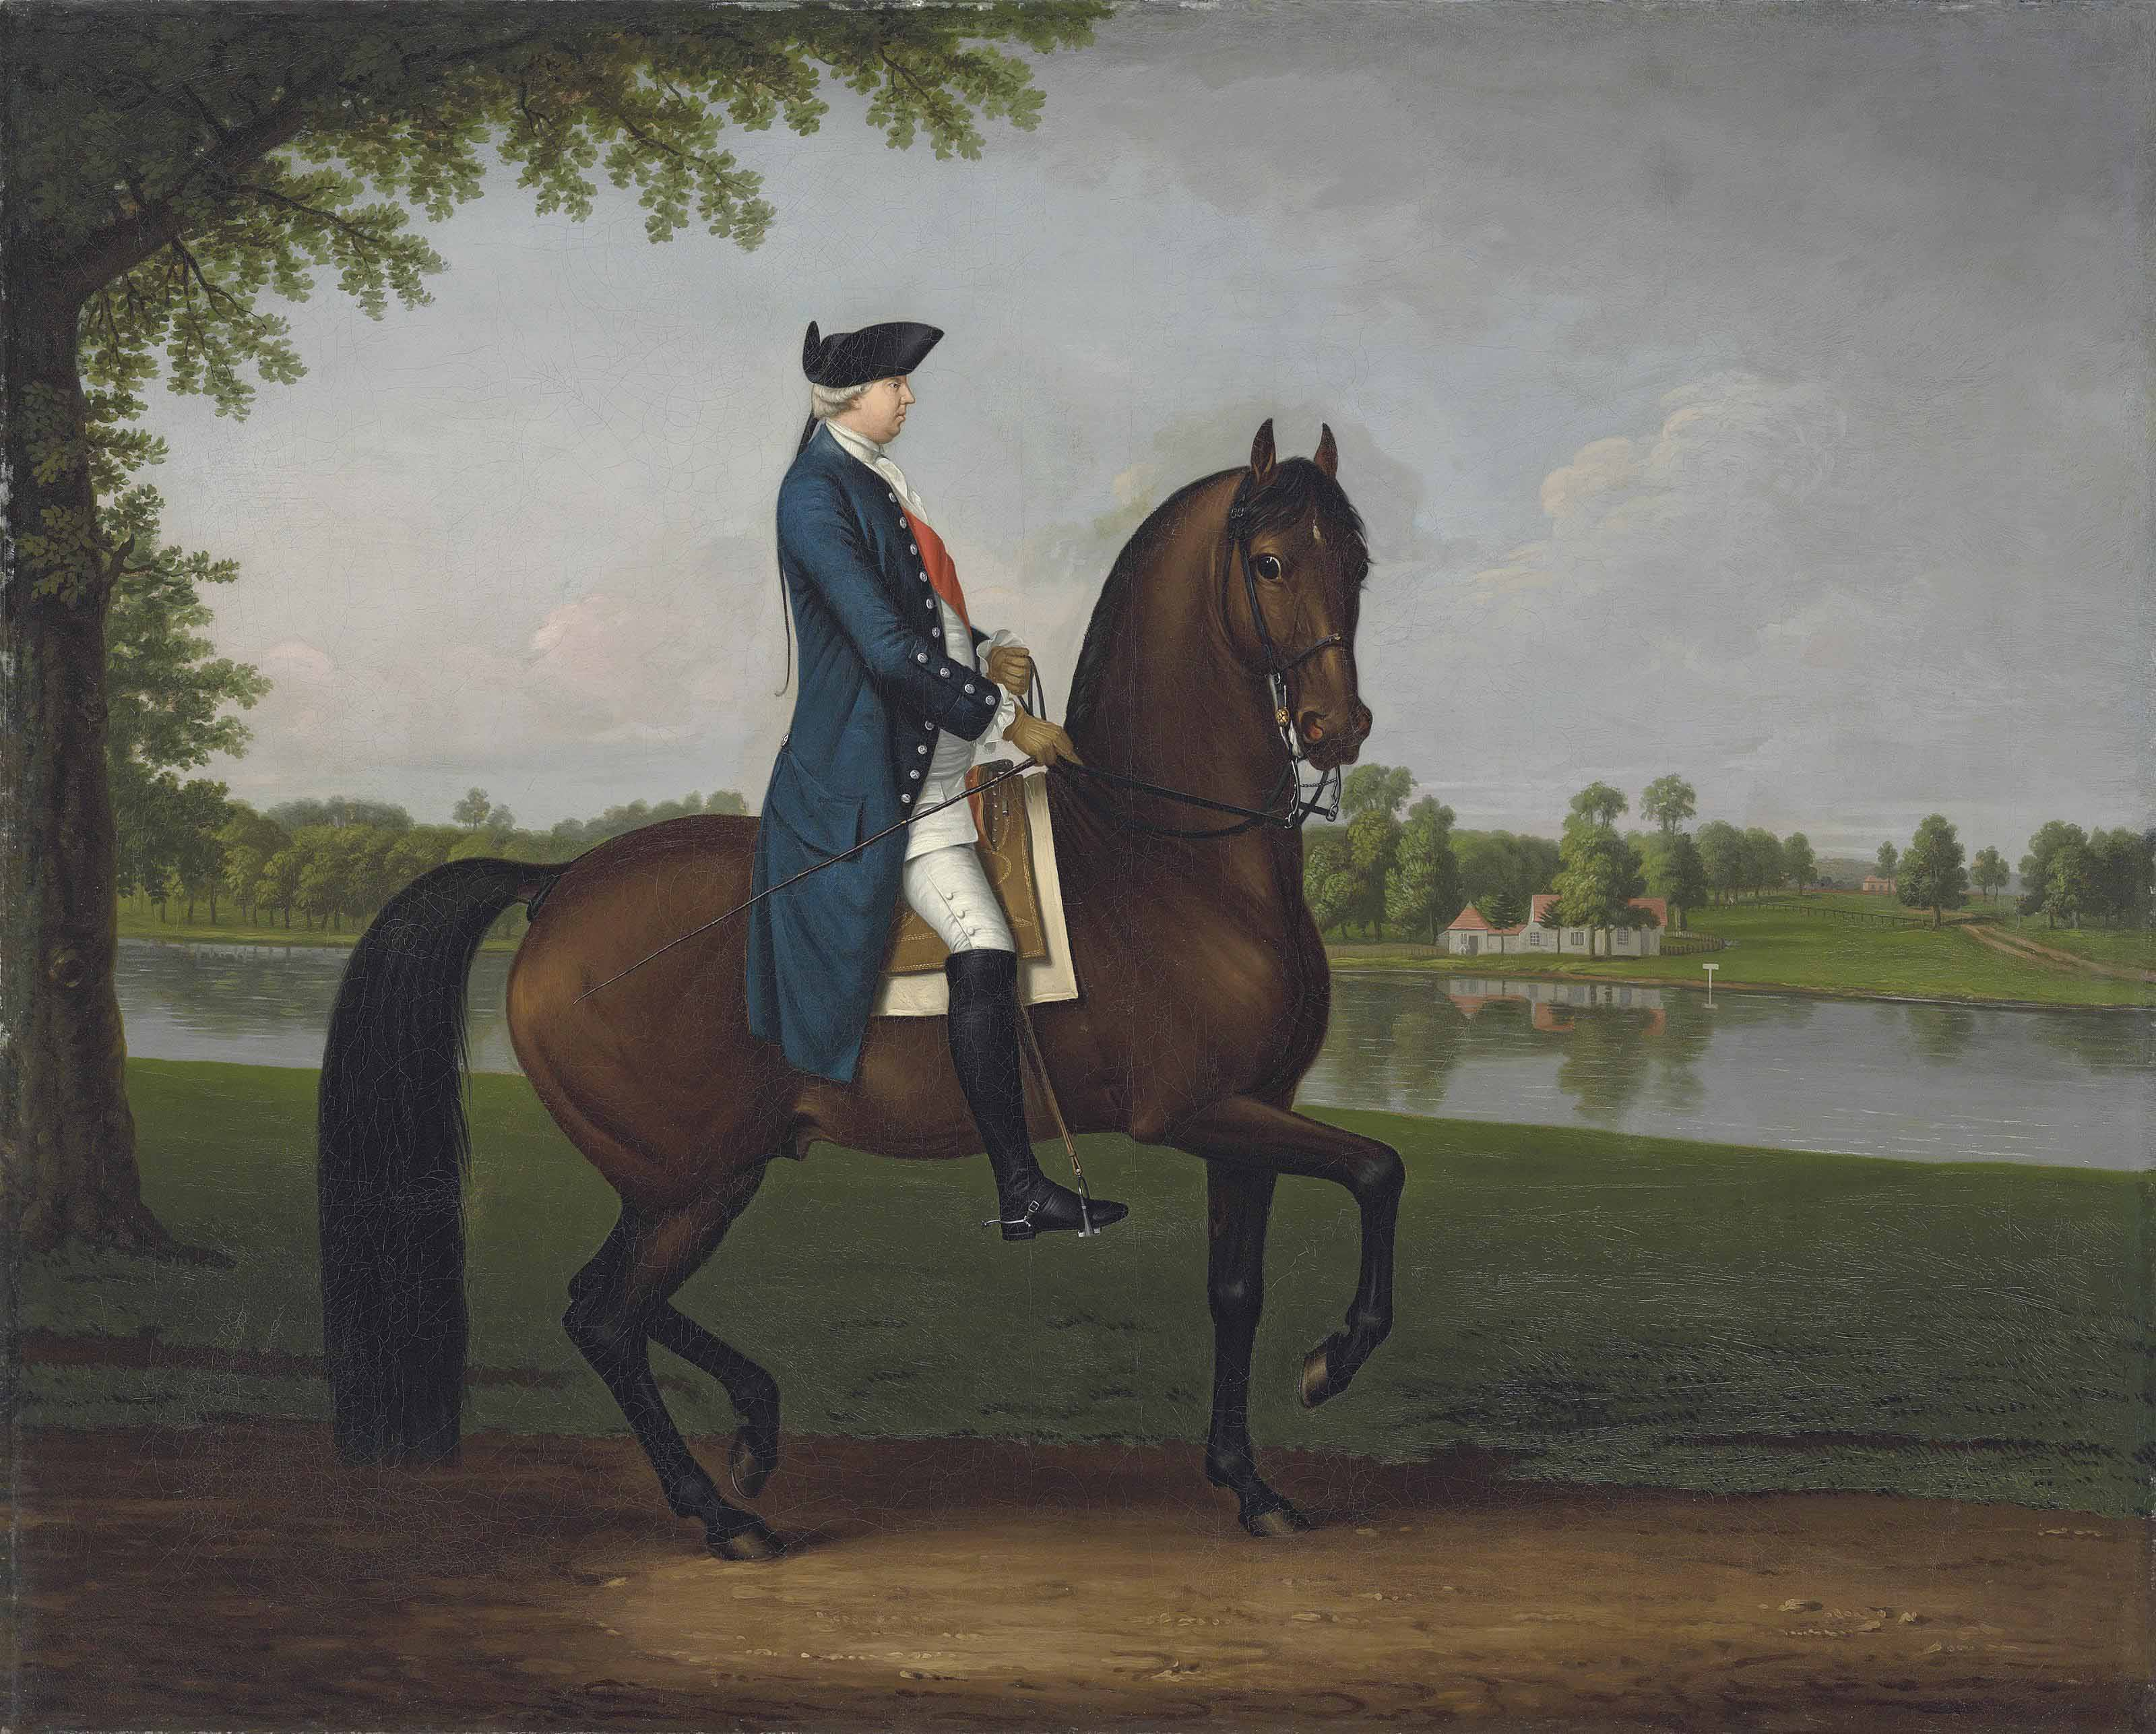 Equestrian portrait of Prince William Augustus, Duke of Cumberland (1721-1765), full-length, mounted on his bay charger, in a blue coat, white breeches, black hat and the sash of the Order of the Bath, a view of the River Thames beyond